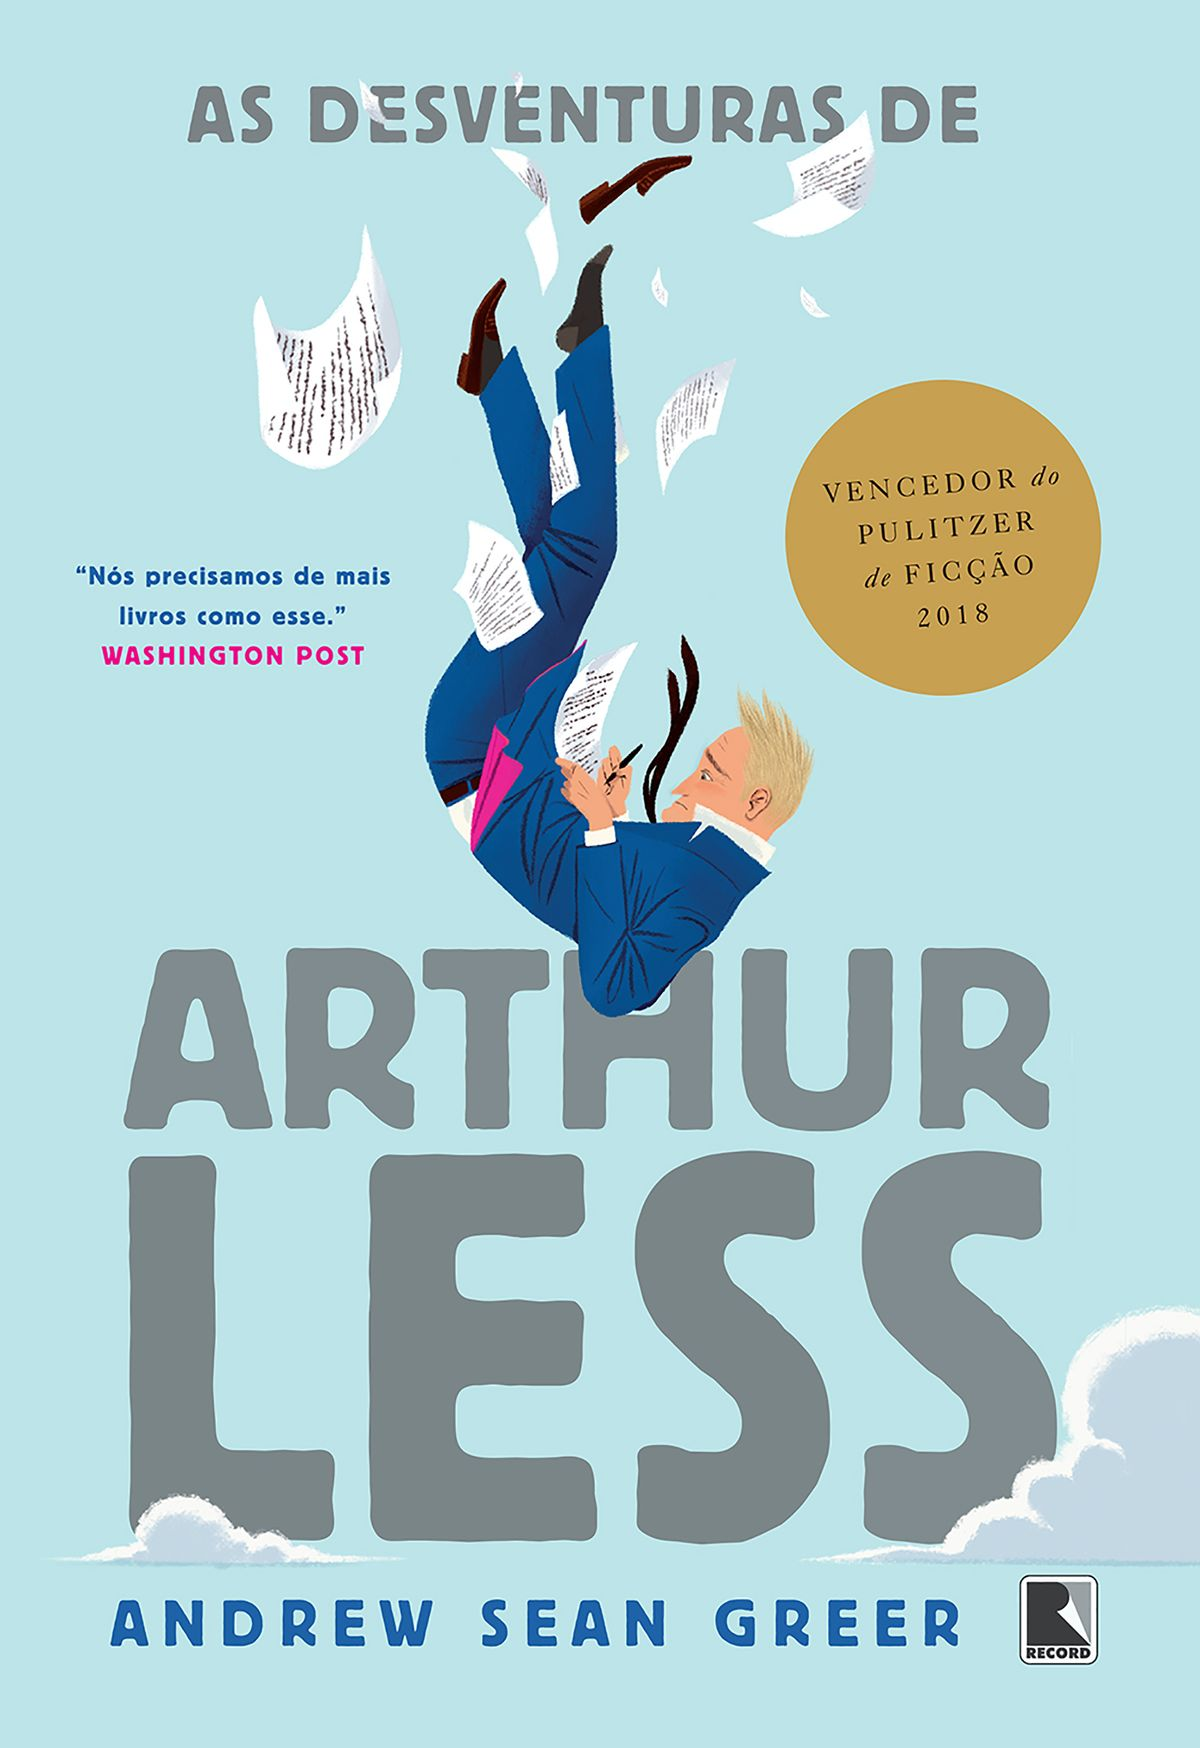 As Desventuras de Arthur Less — Andrew Sean Greer